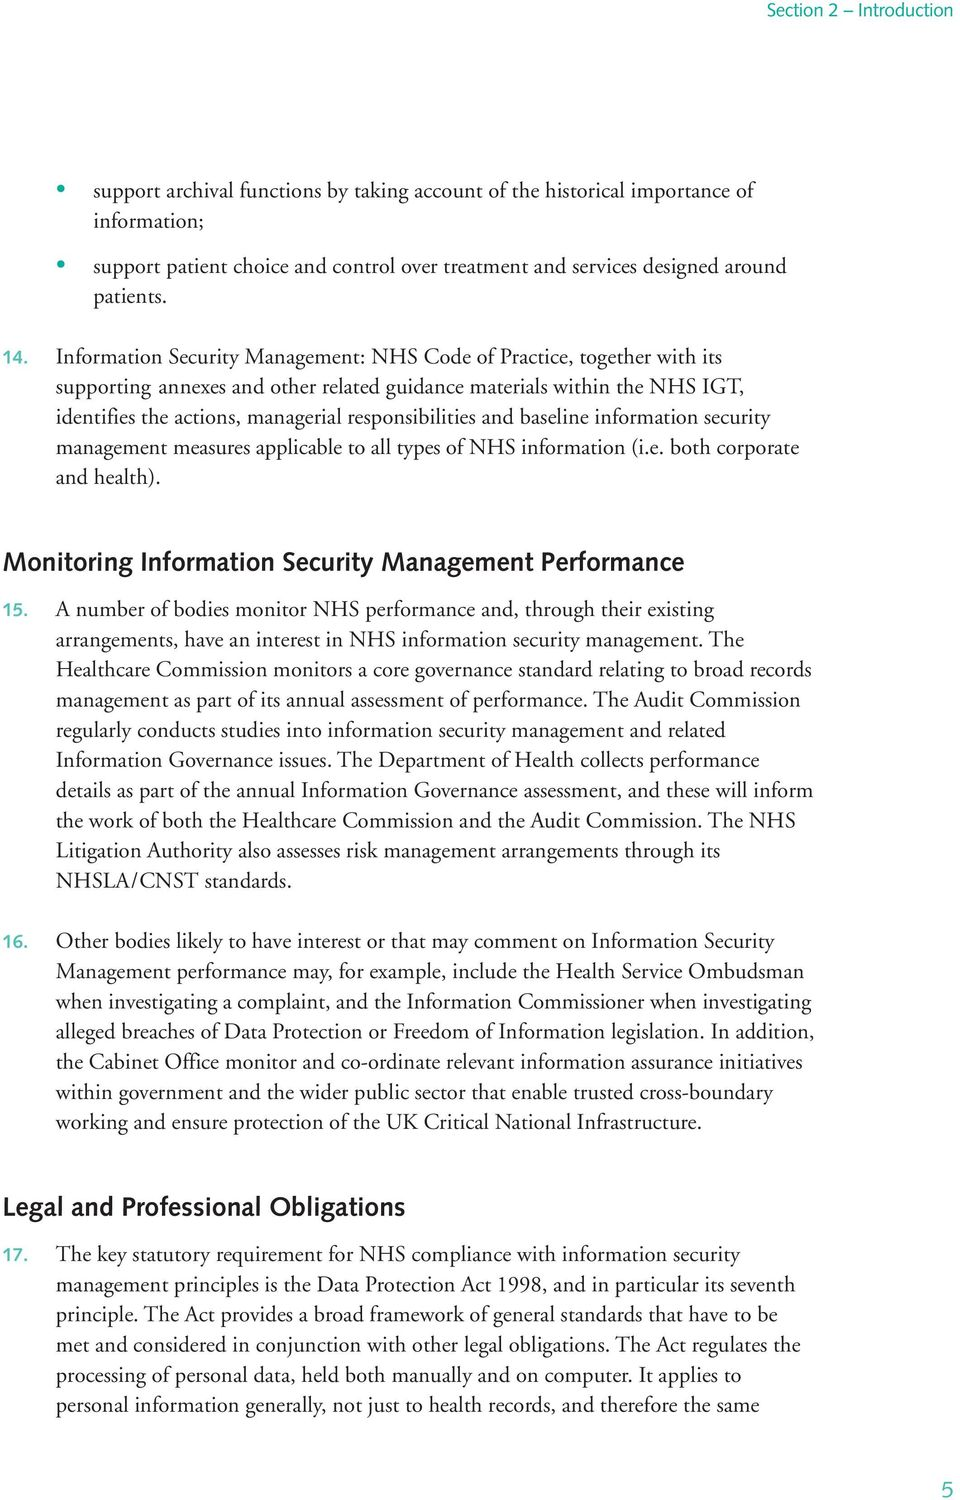 Information Security Management: NHS Code of Practice, together with its supporting annexes and other related guidance materials within the NHS IGT, identifies the actions, managerial